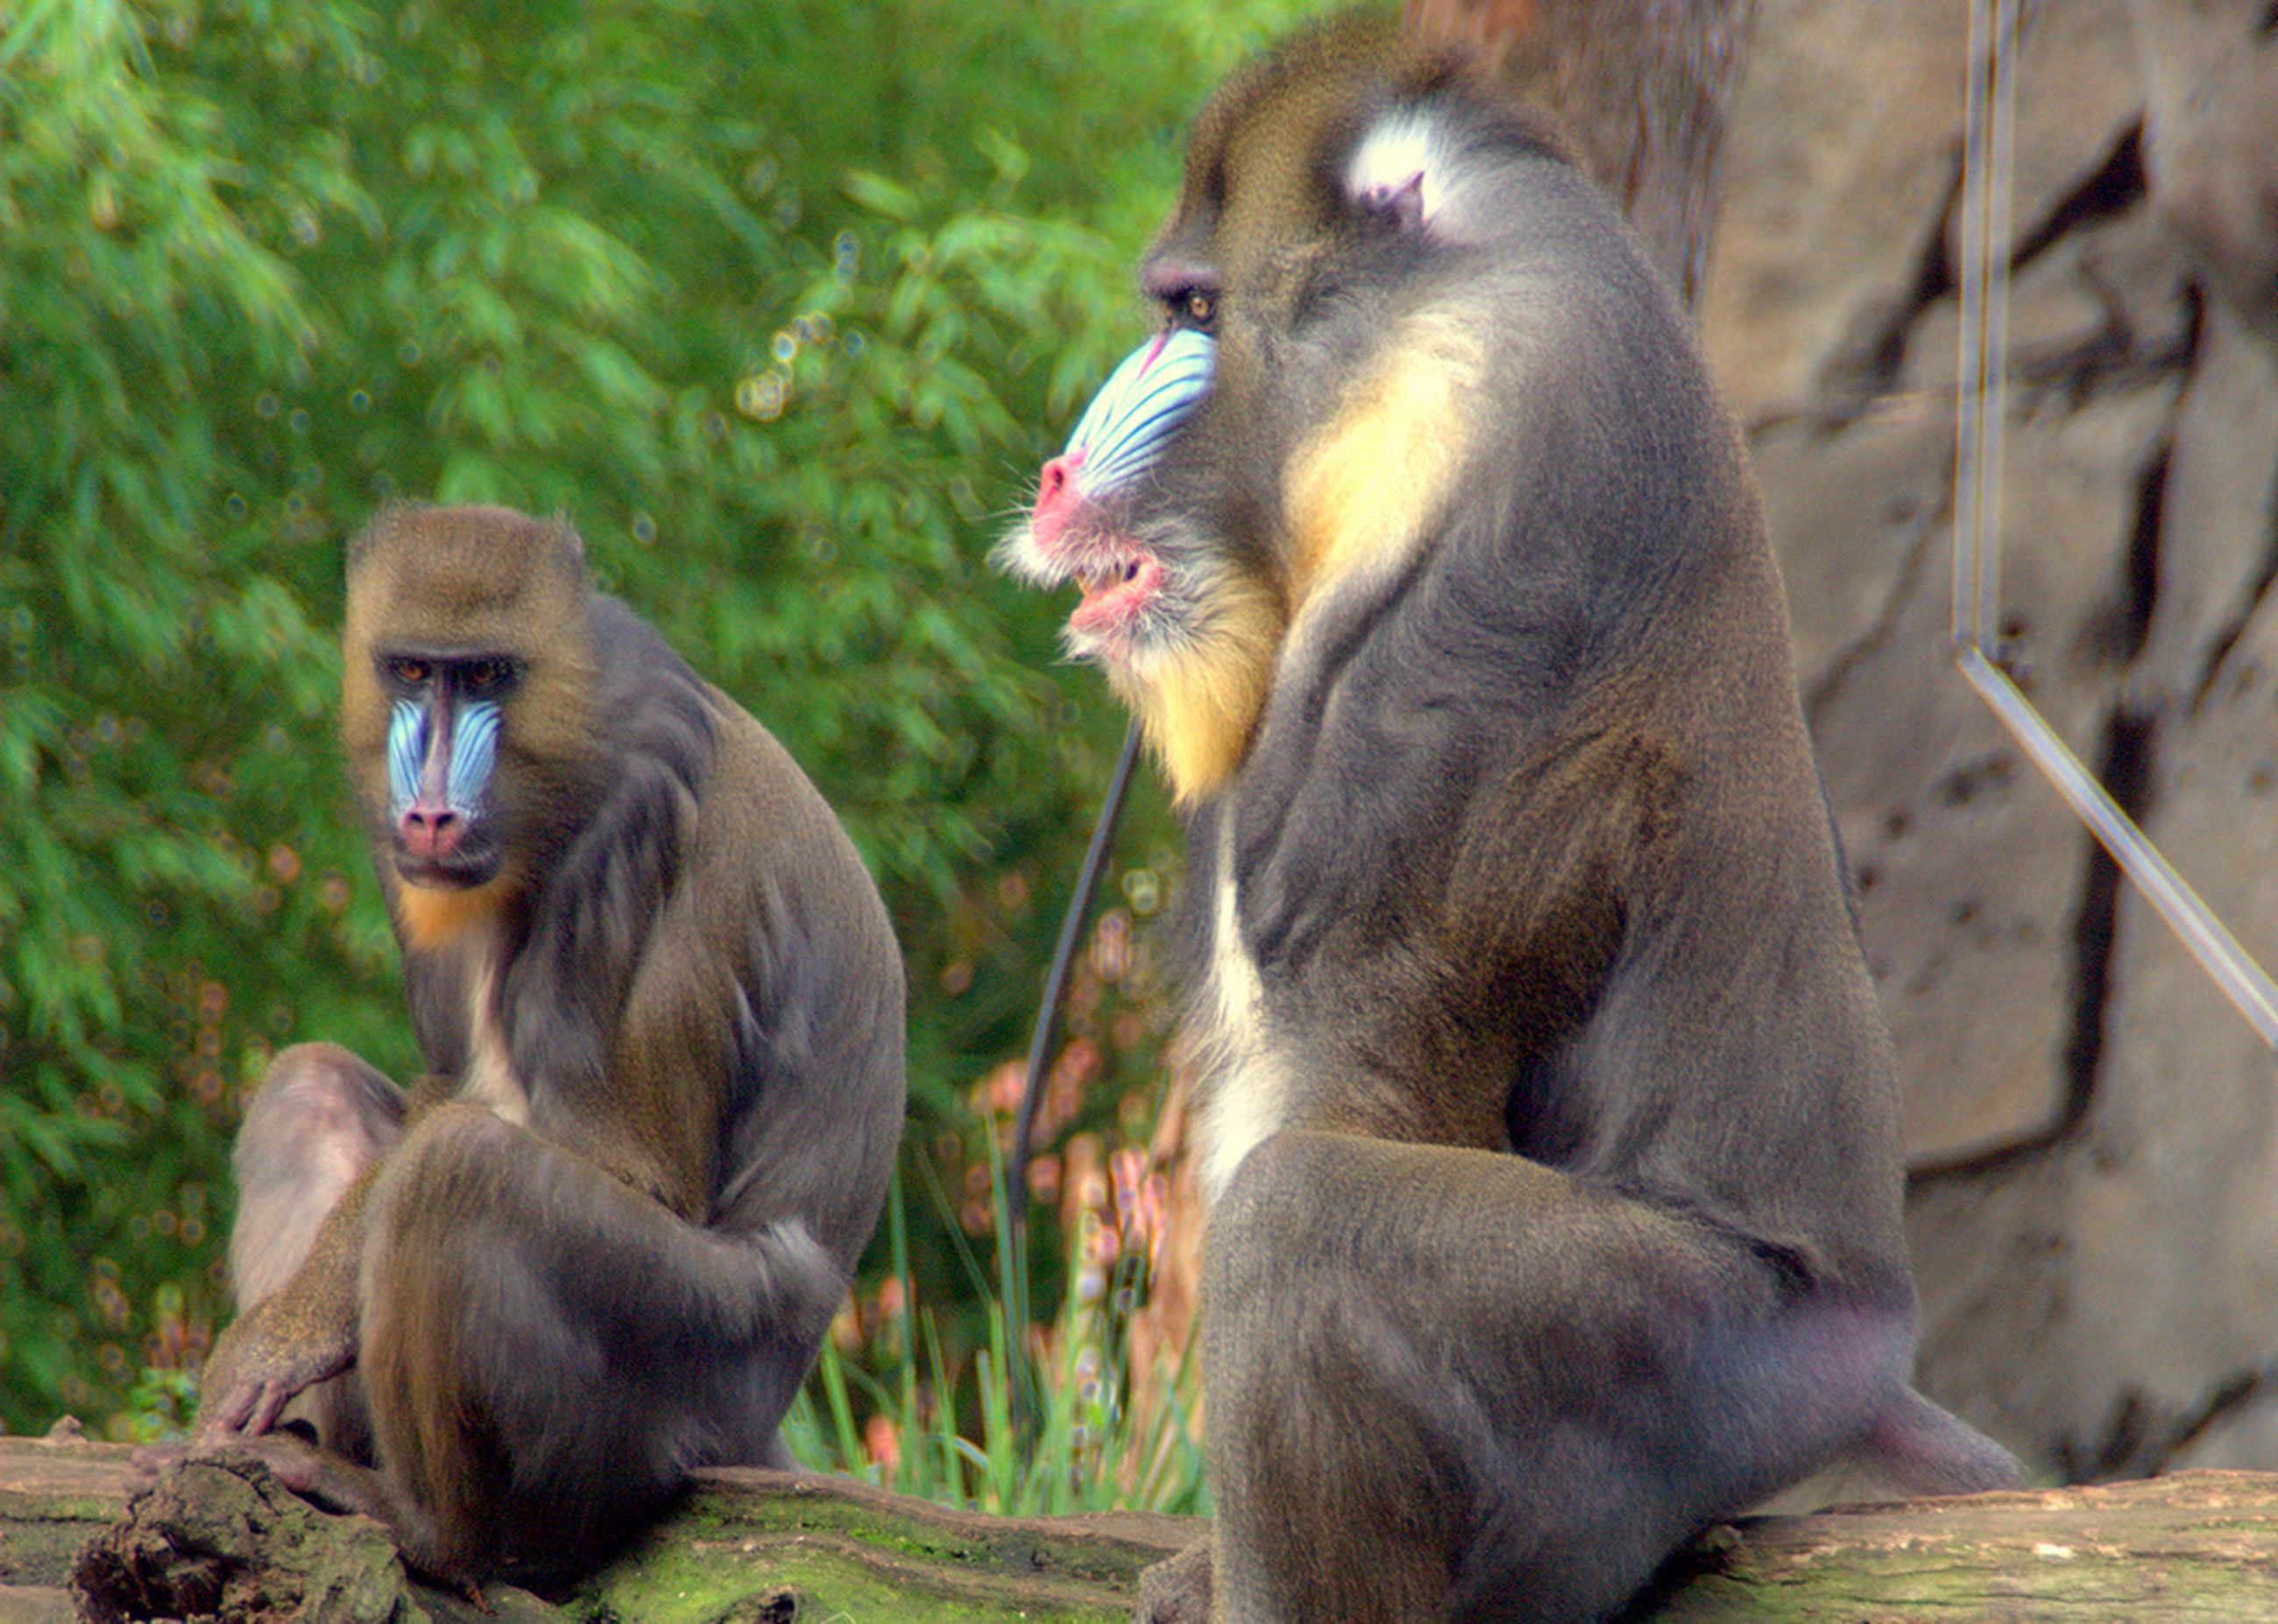 animal themes, monkey, animals in the wild, wildlife, togetherness, two animals, primate, young animal, focus on foreground, animal family, sitting, mammal, three animals, nature, outdoors, day, close-up, one animal, bird